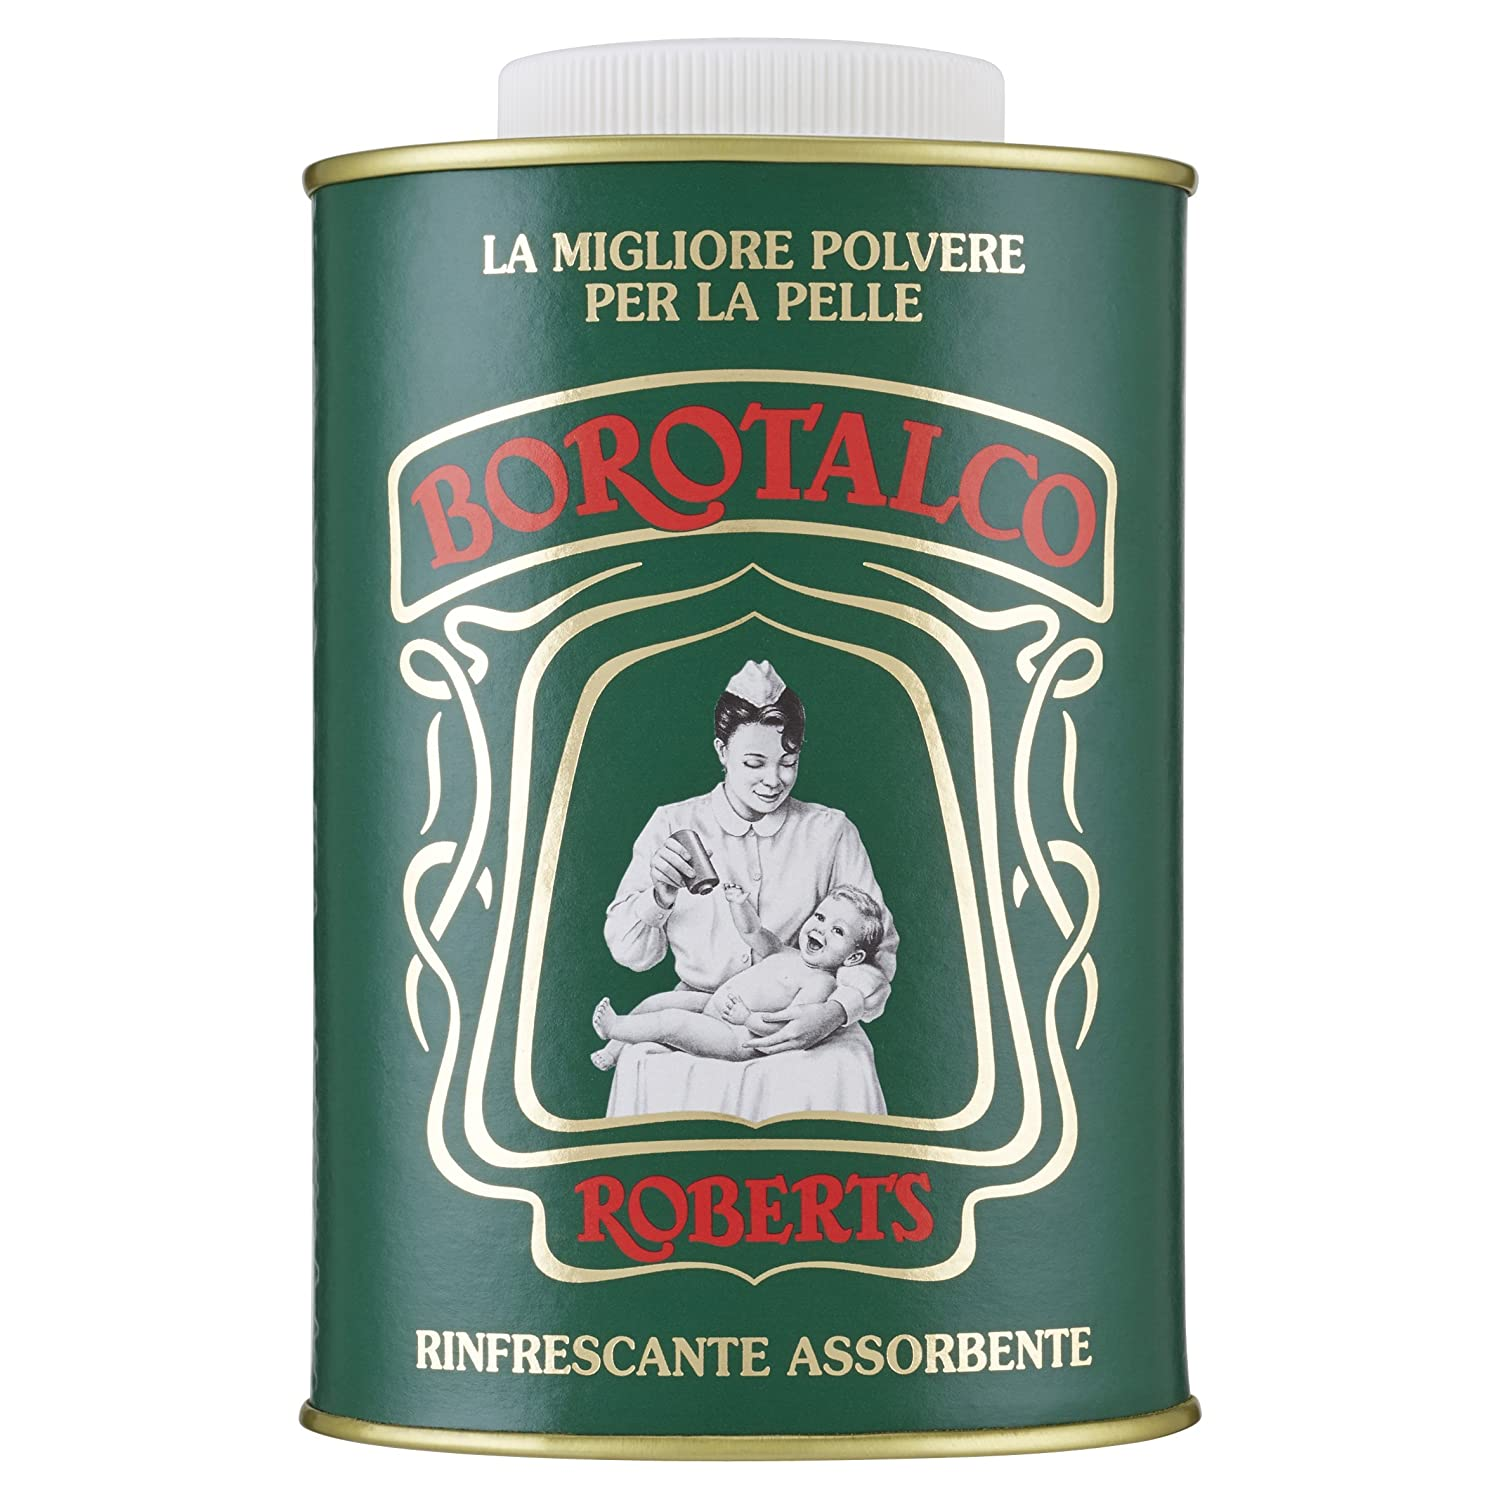 Kalastyle Borotalco Powder Antique Tin, 500g 909